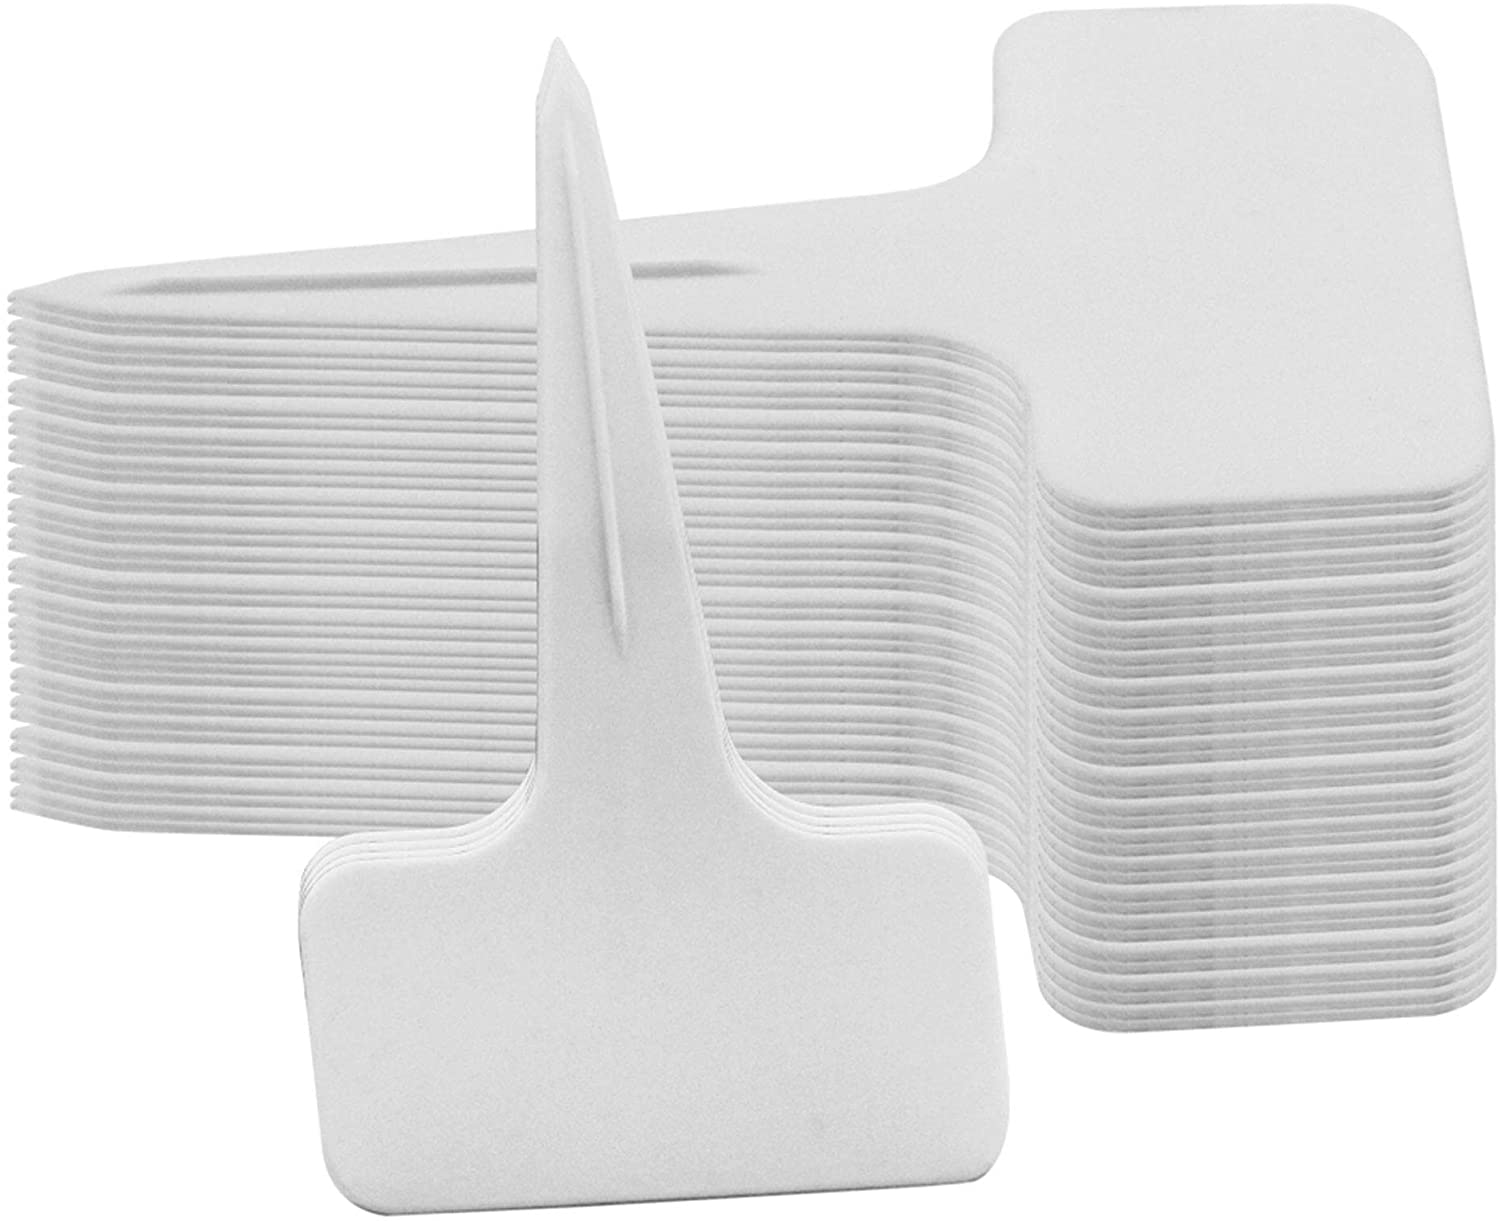 Glory Island 120 Pcs Plant Labels T-Type Tags, Plastic Garden Labels Nursery Tags, 6 x 10 cm (White)